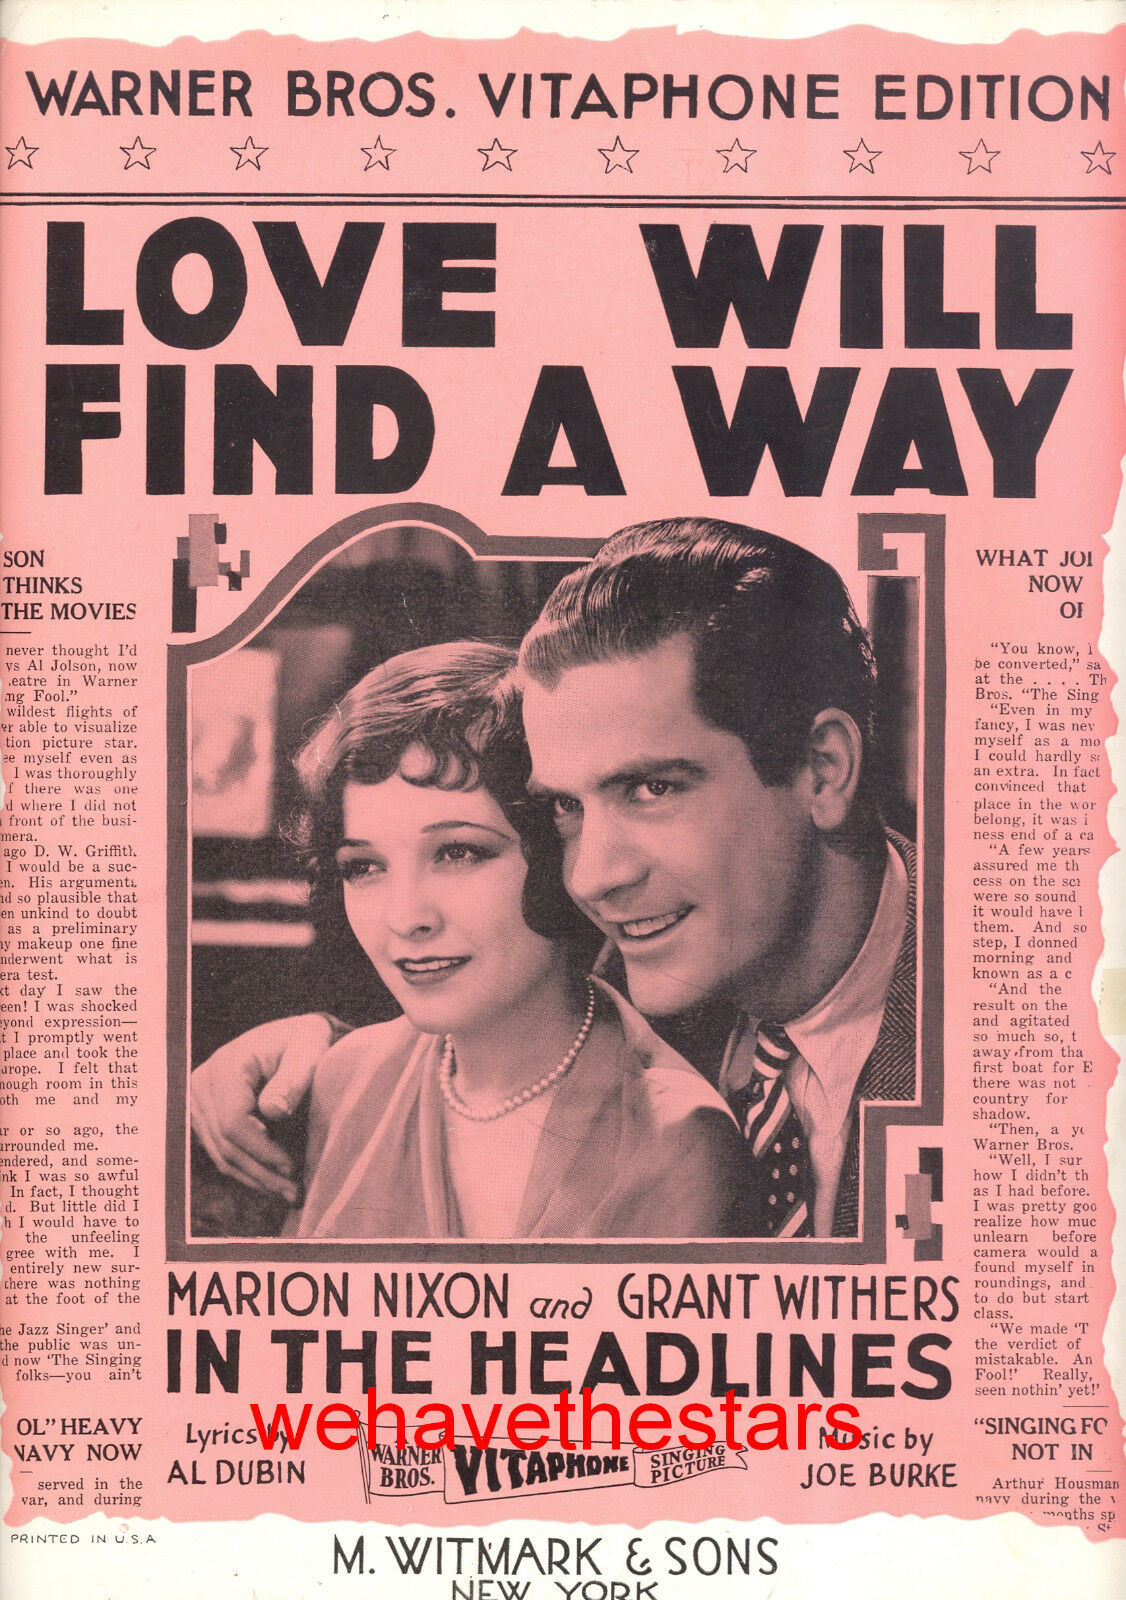 IN THE HEADLINES Sheet Music